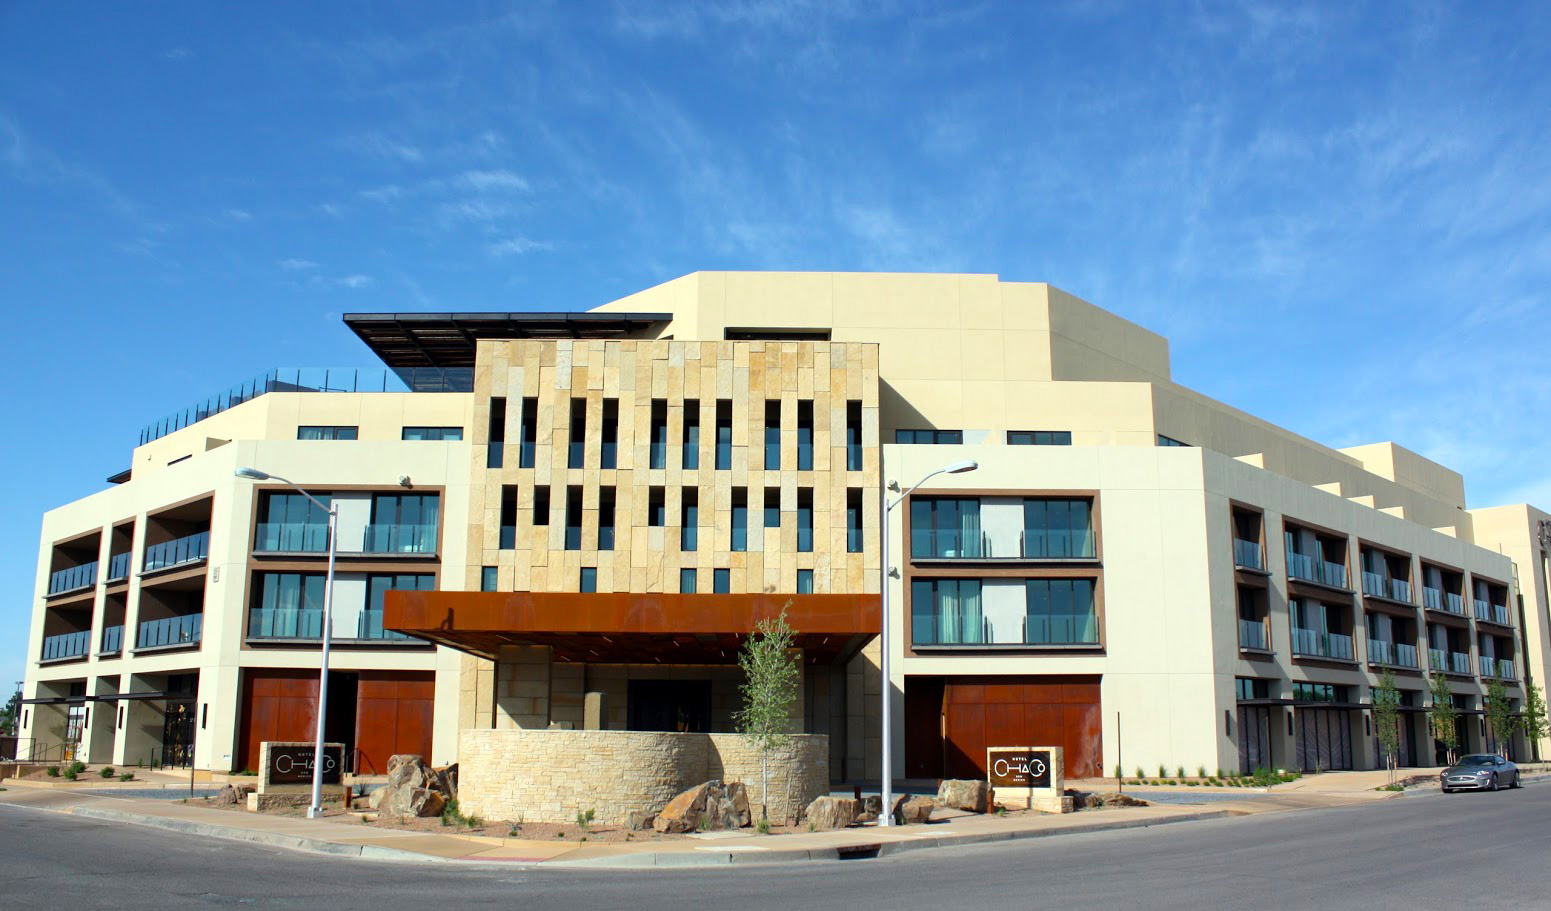 Hotel chaco grand opening news for 5 elements salon albuquerque